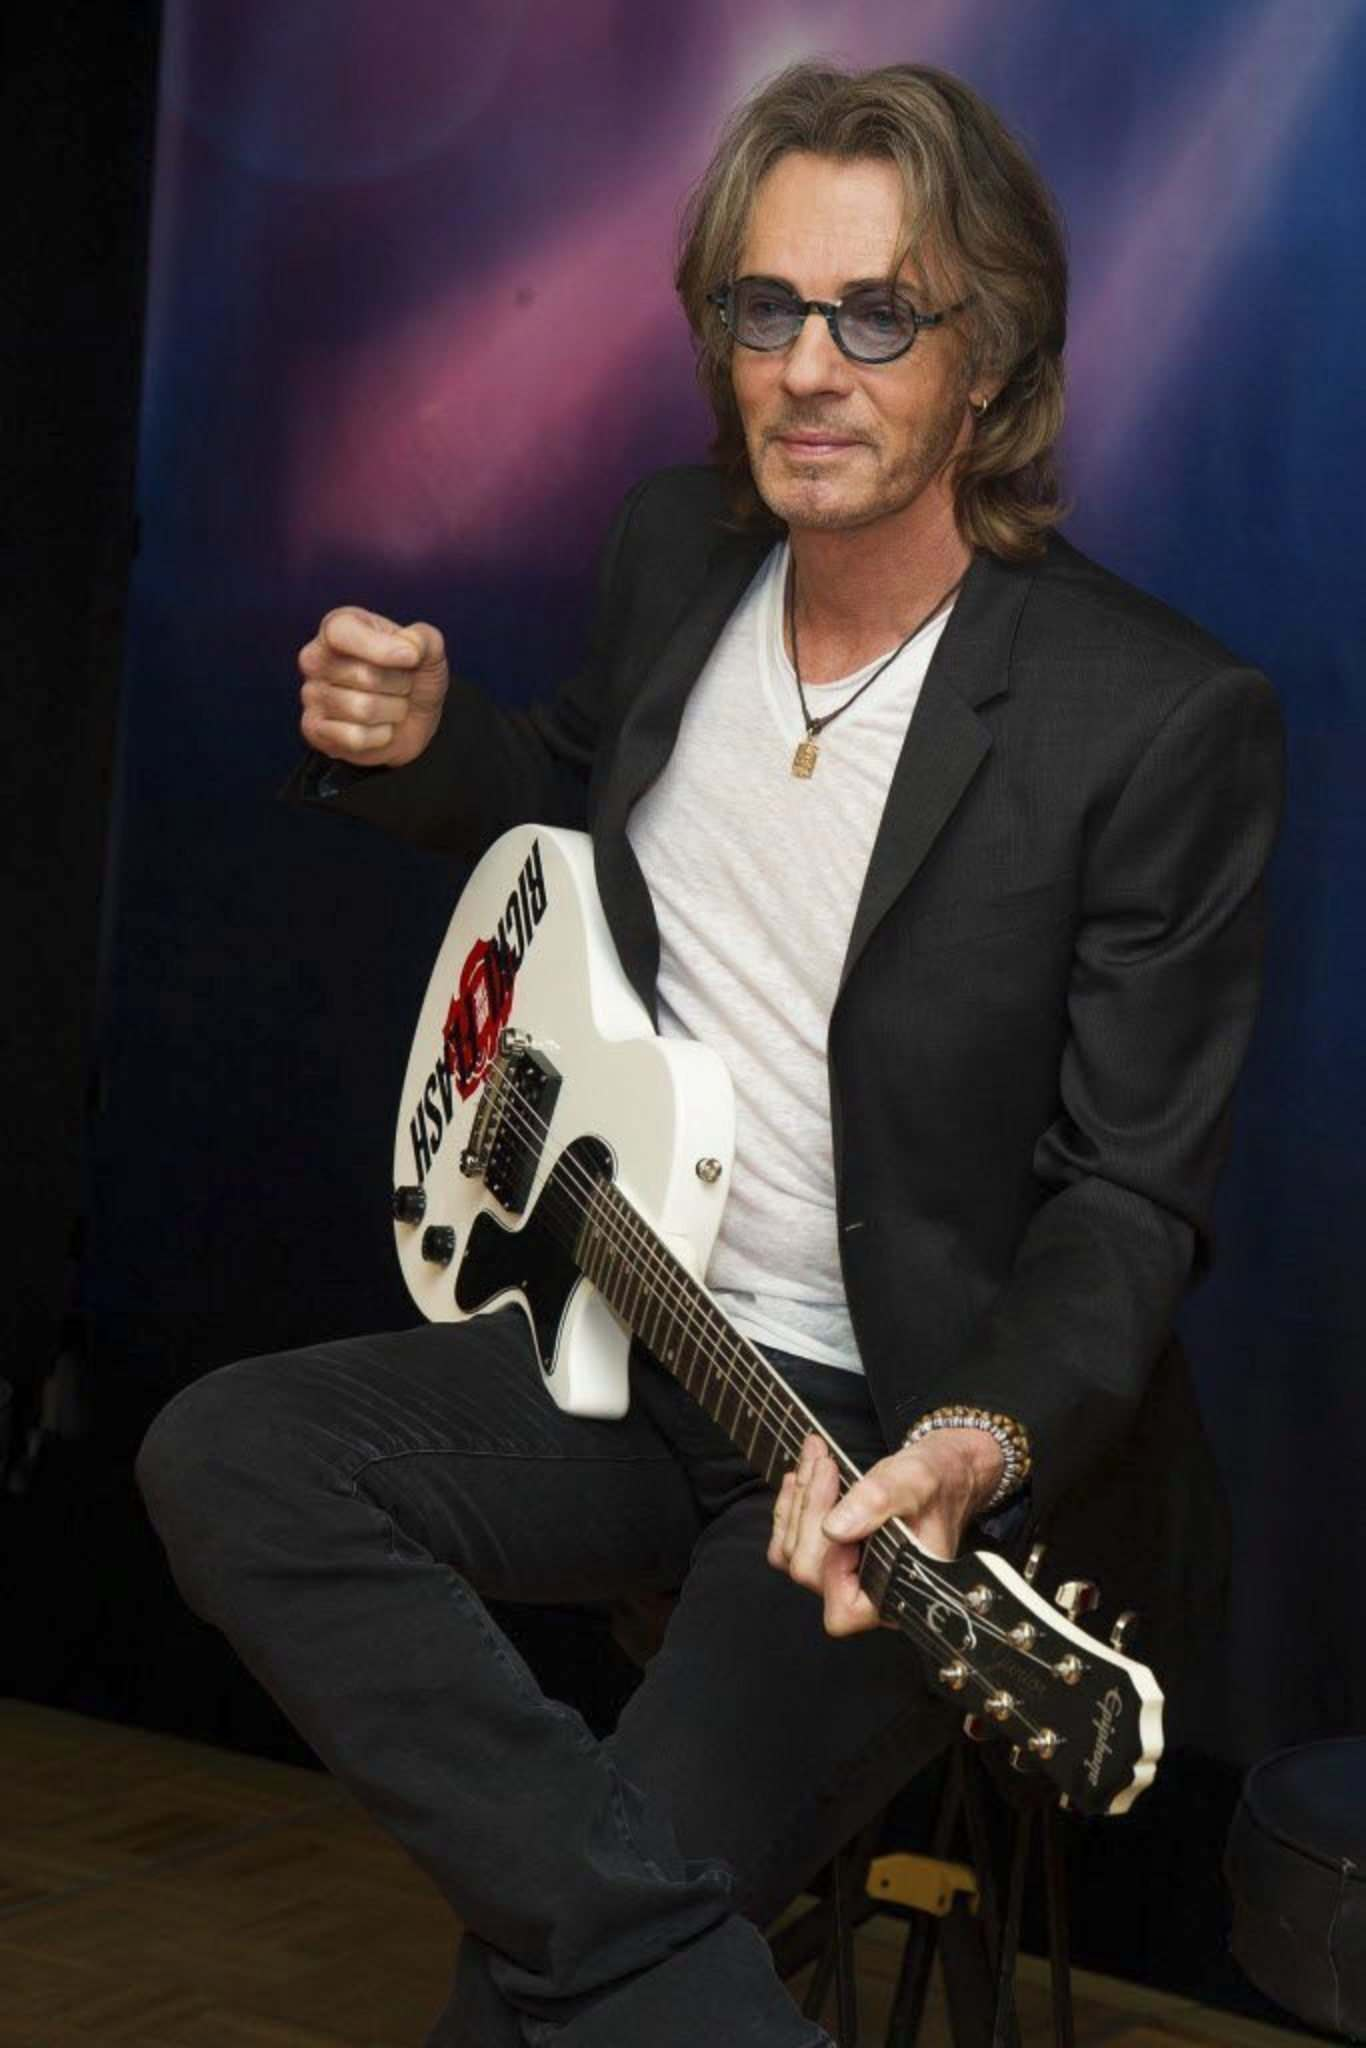 Photo by Charles Sykes / Invision Files</p><p>Rick Springfield will bring his catalogue of hits to the Winnipeg audience when he plays the Burt on Aug. 30.</p></p>